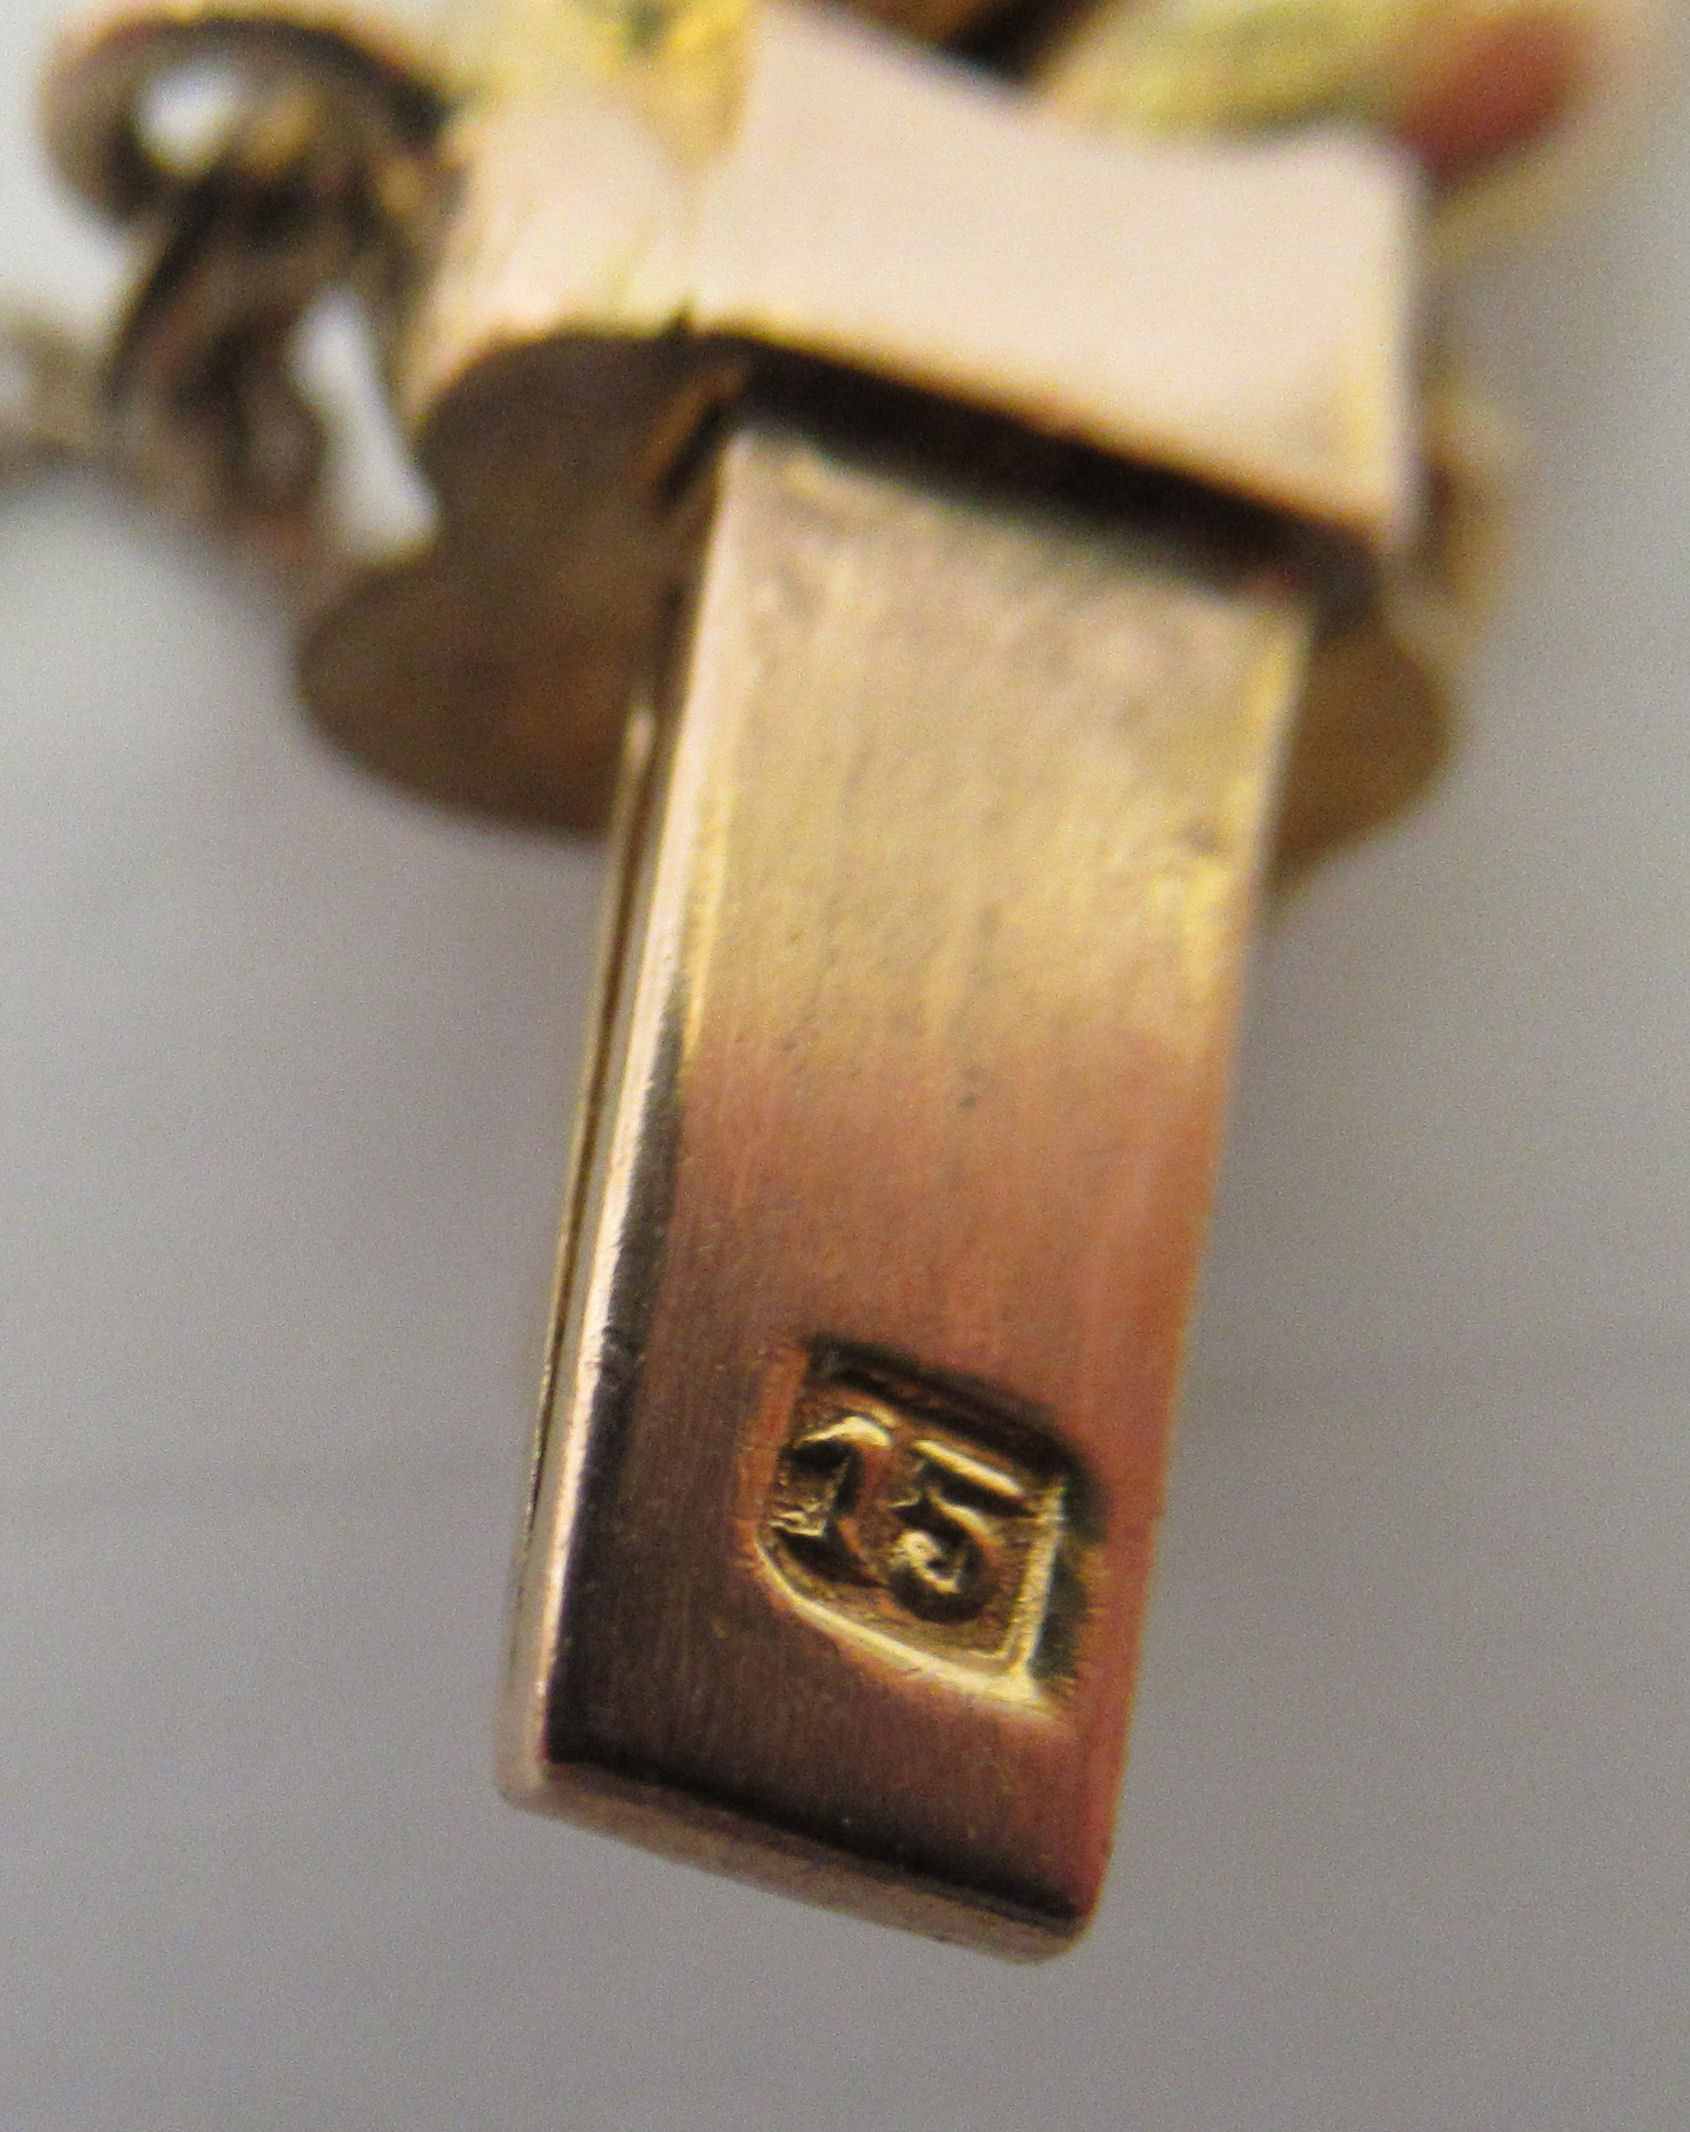 A 15ct gold fancy link bracelet, on a bayonet clasp and safety chain - Image 3 of 3